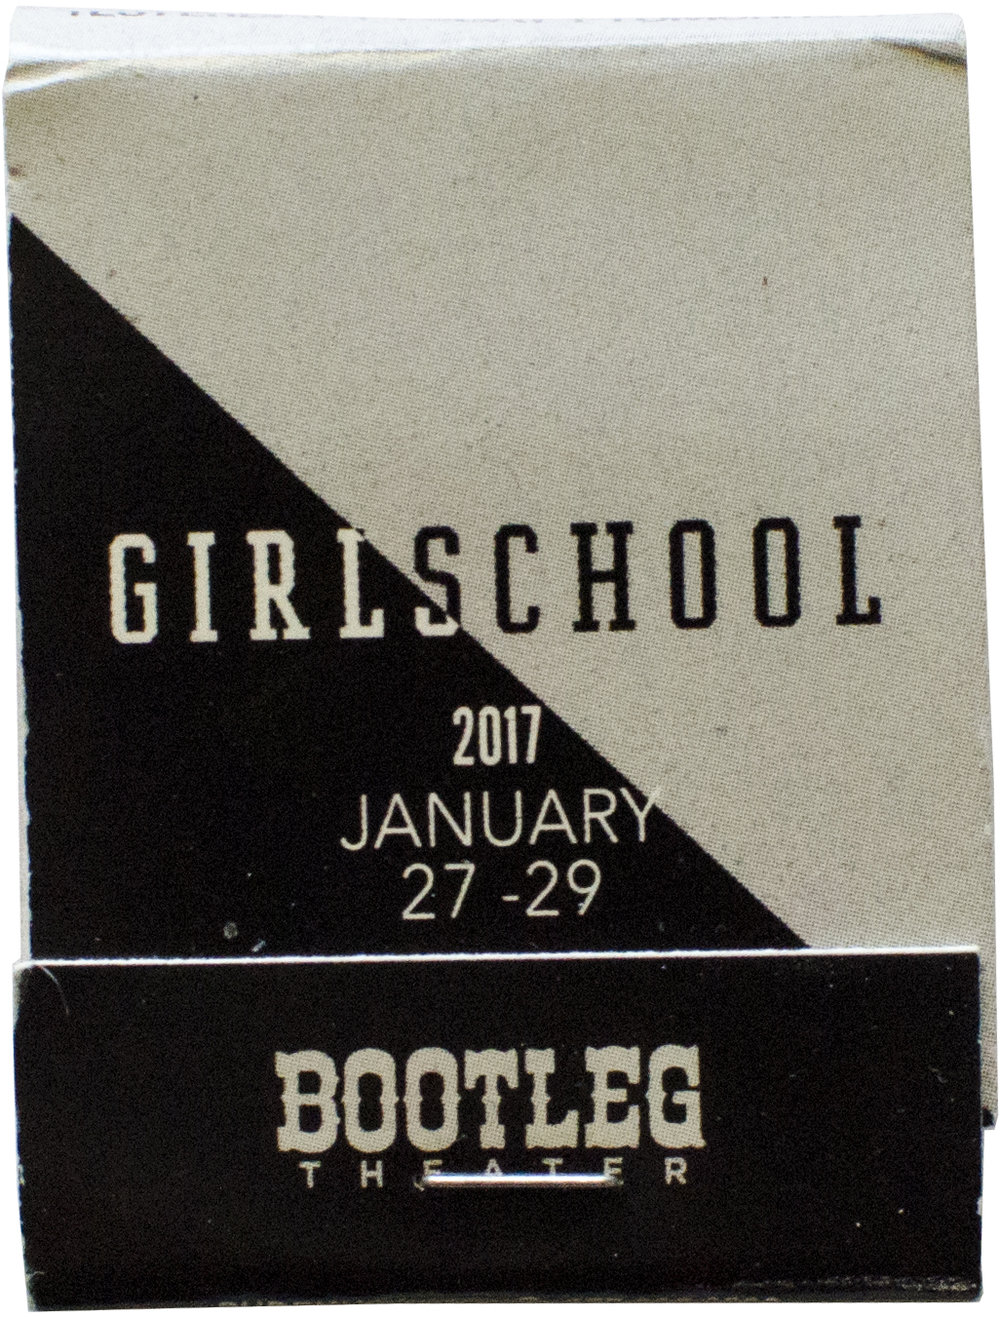 2017-1-22 Girlschool.jpg